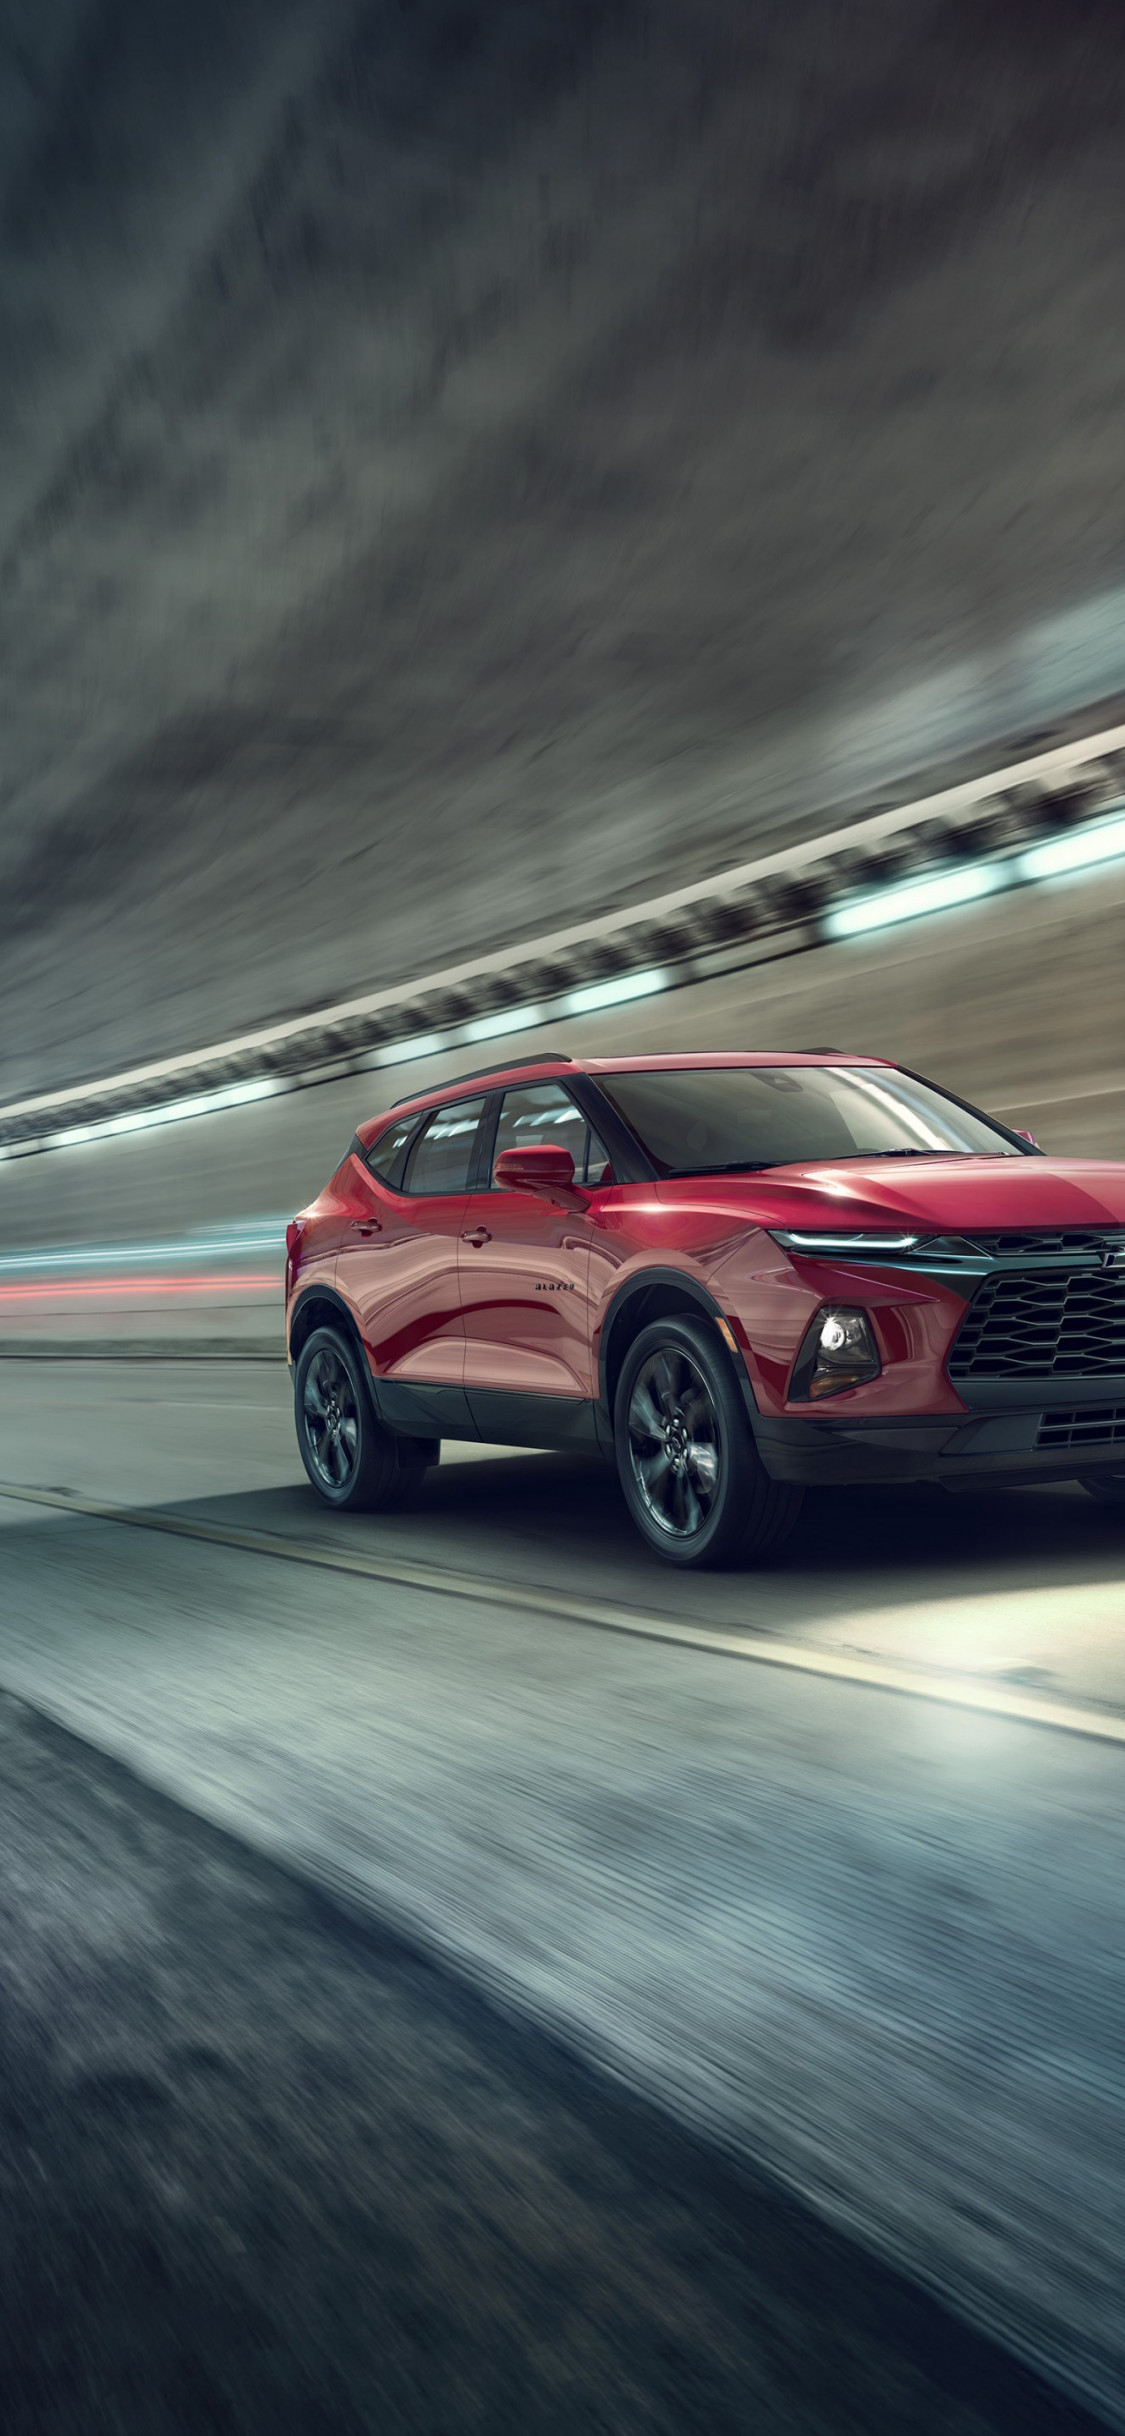 Chevrolet Blazer wallpaper 1125x2436